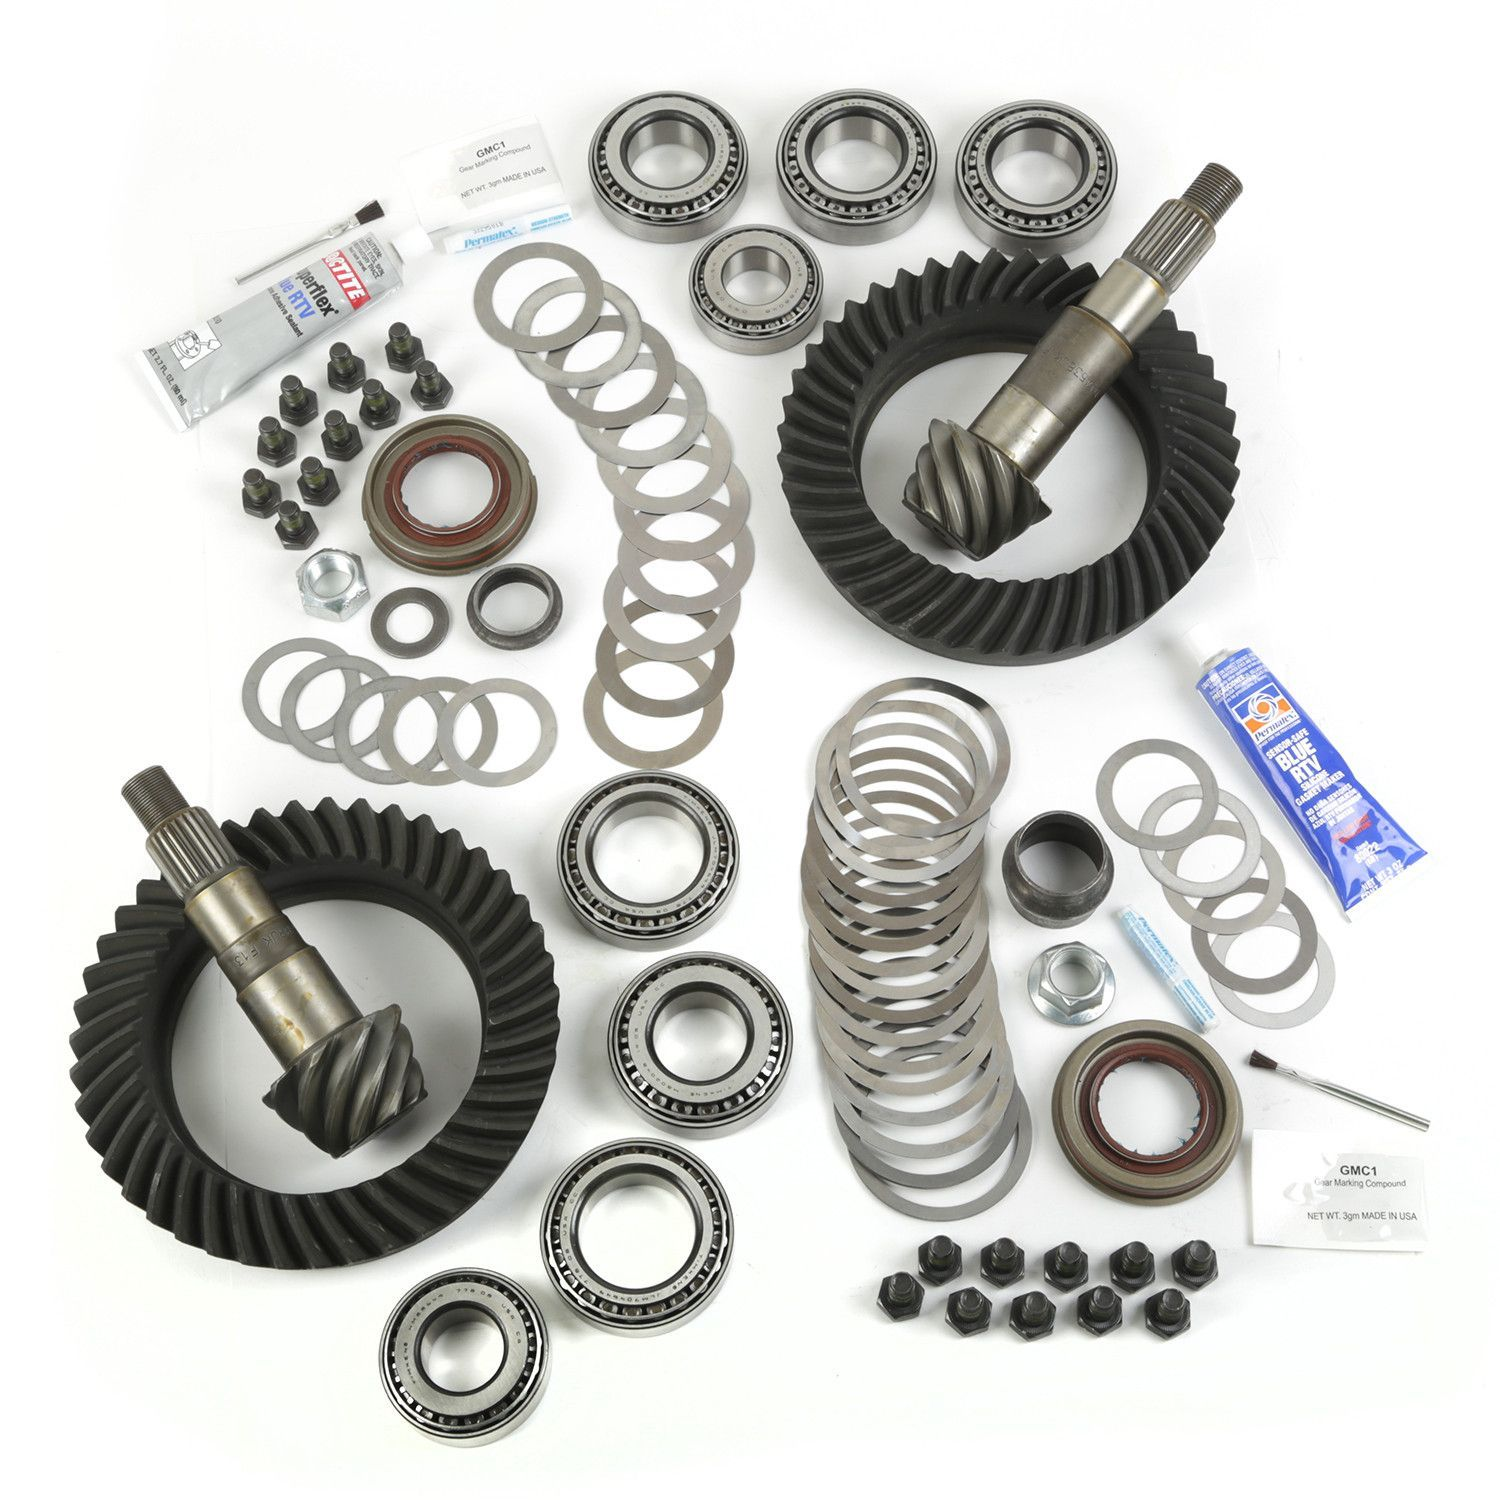 Alloy USA 352050 Ring And Pinion Overhaul Kit